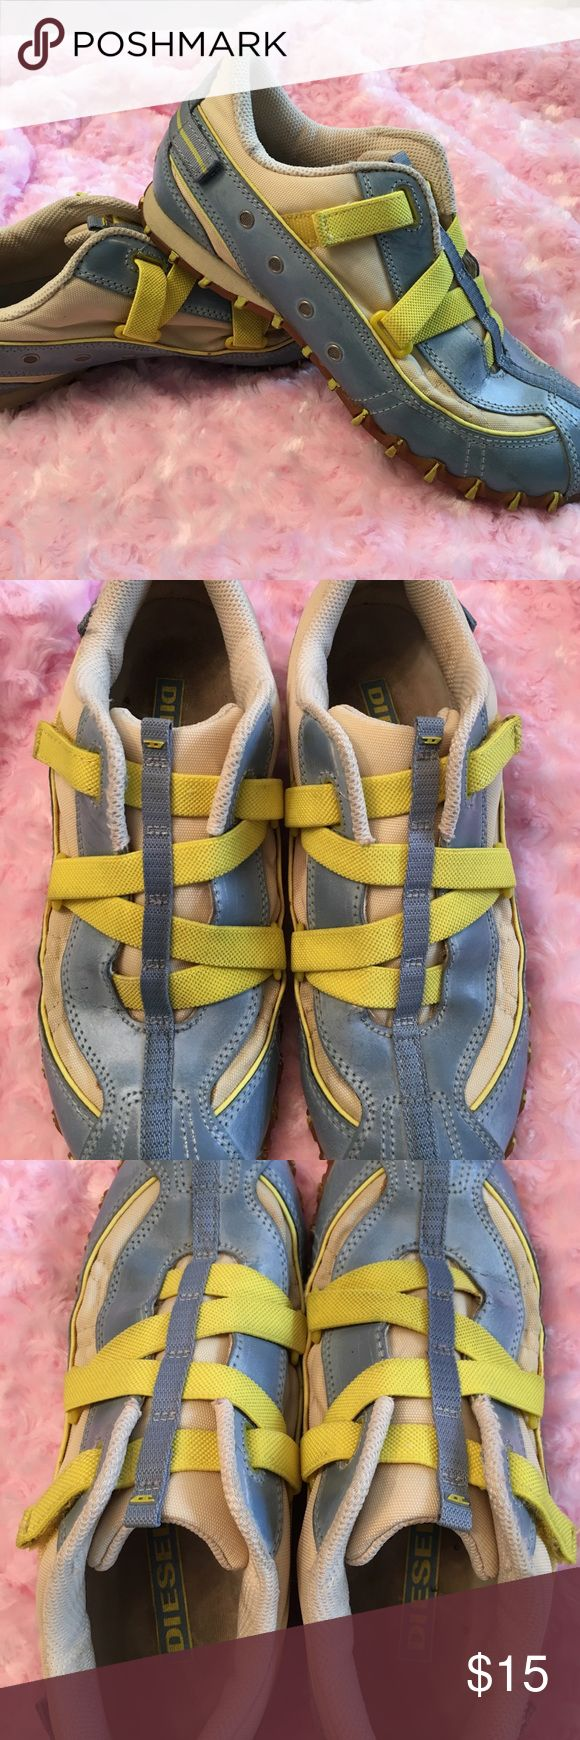 Diesel Ladies Shoes Size 7 Blue leather upper with rubber soles. Yellow crisscross elastic velcro closure. Excellent condition for having been worn a few times.  Always complimented on them when worn. Diesel Shoes